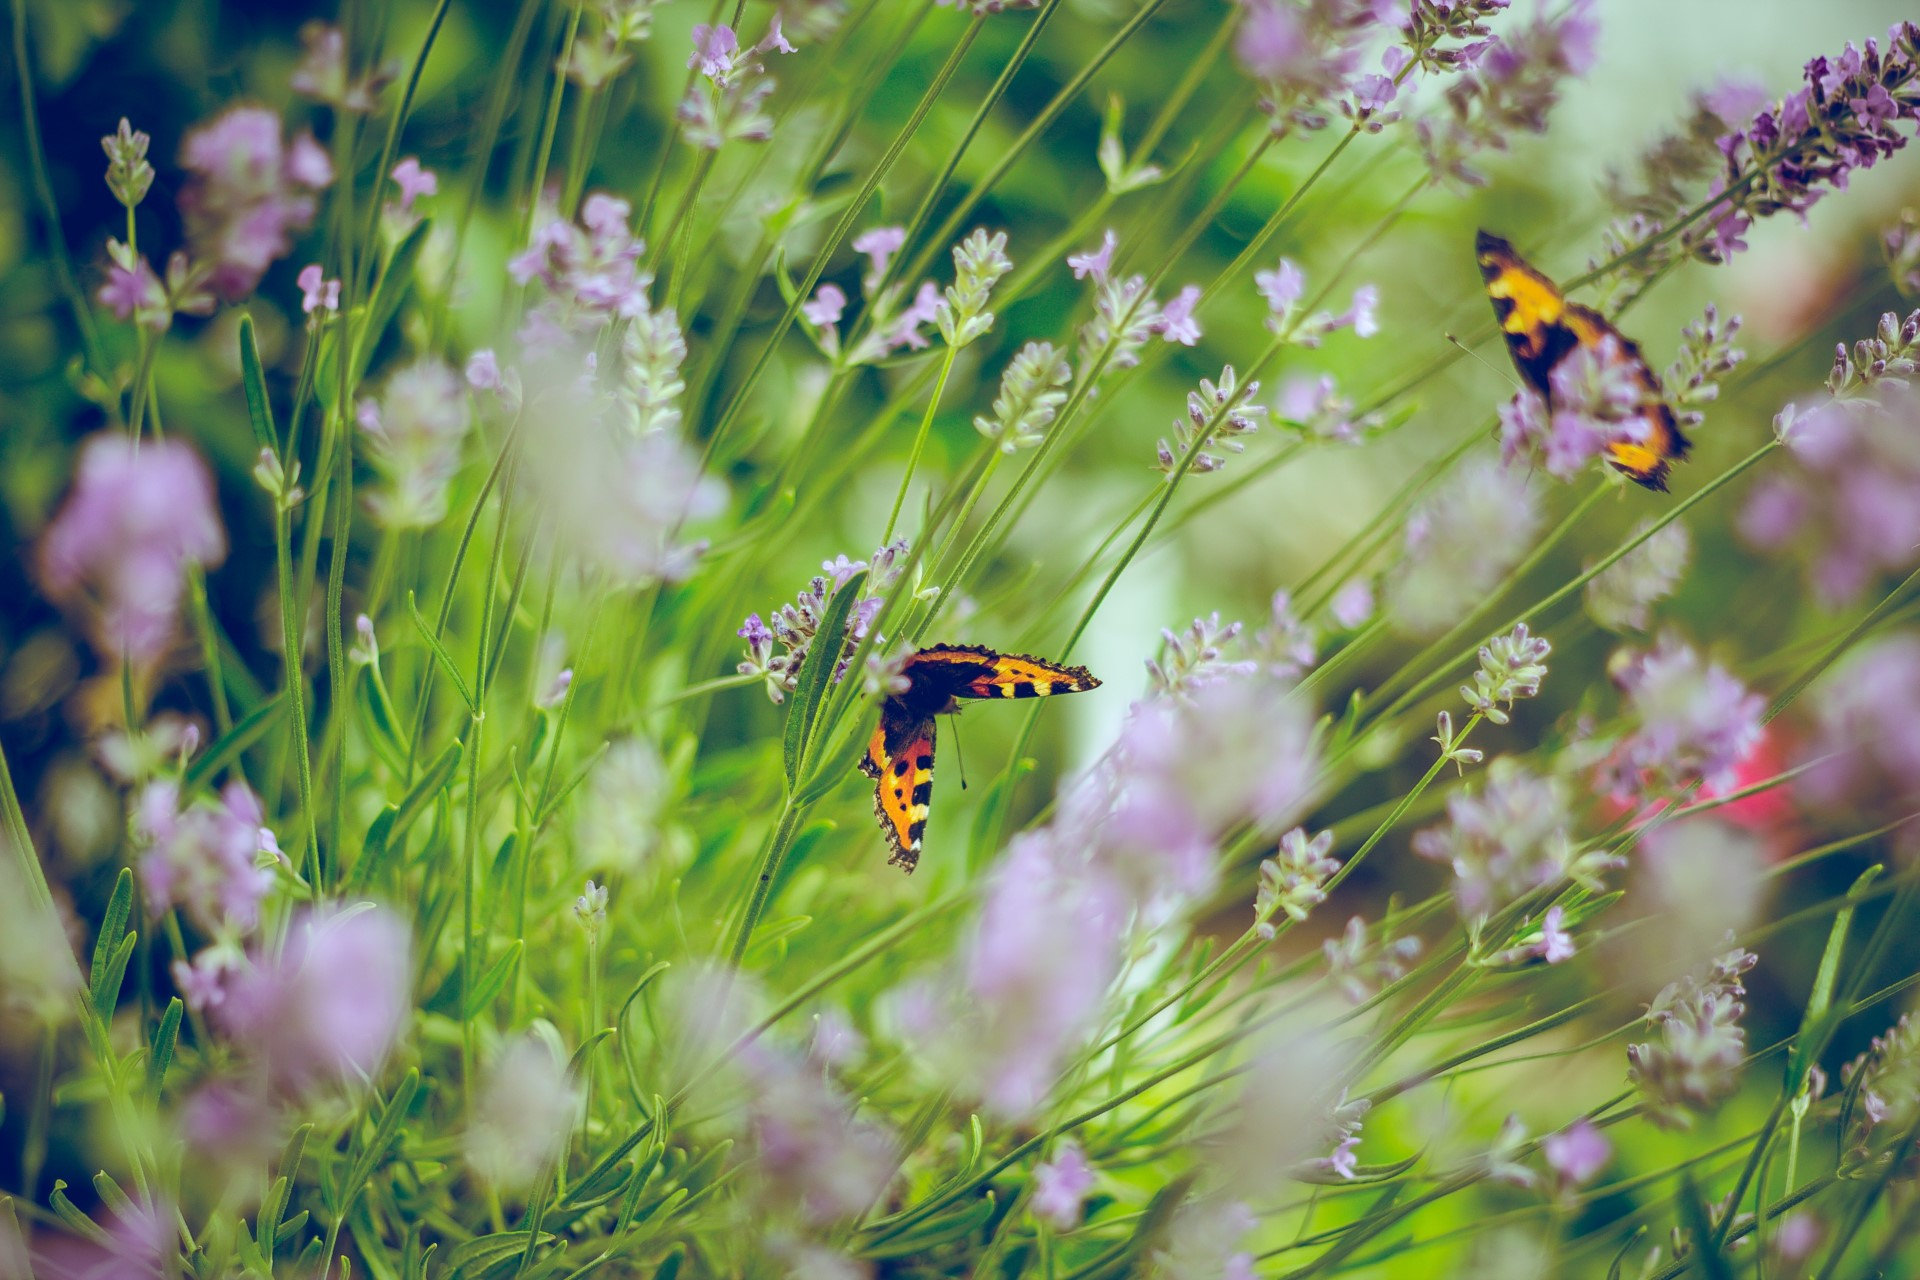 What You Should Know About Gardening for Pollinators